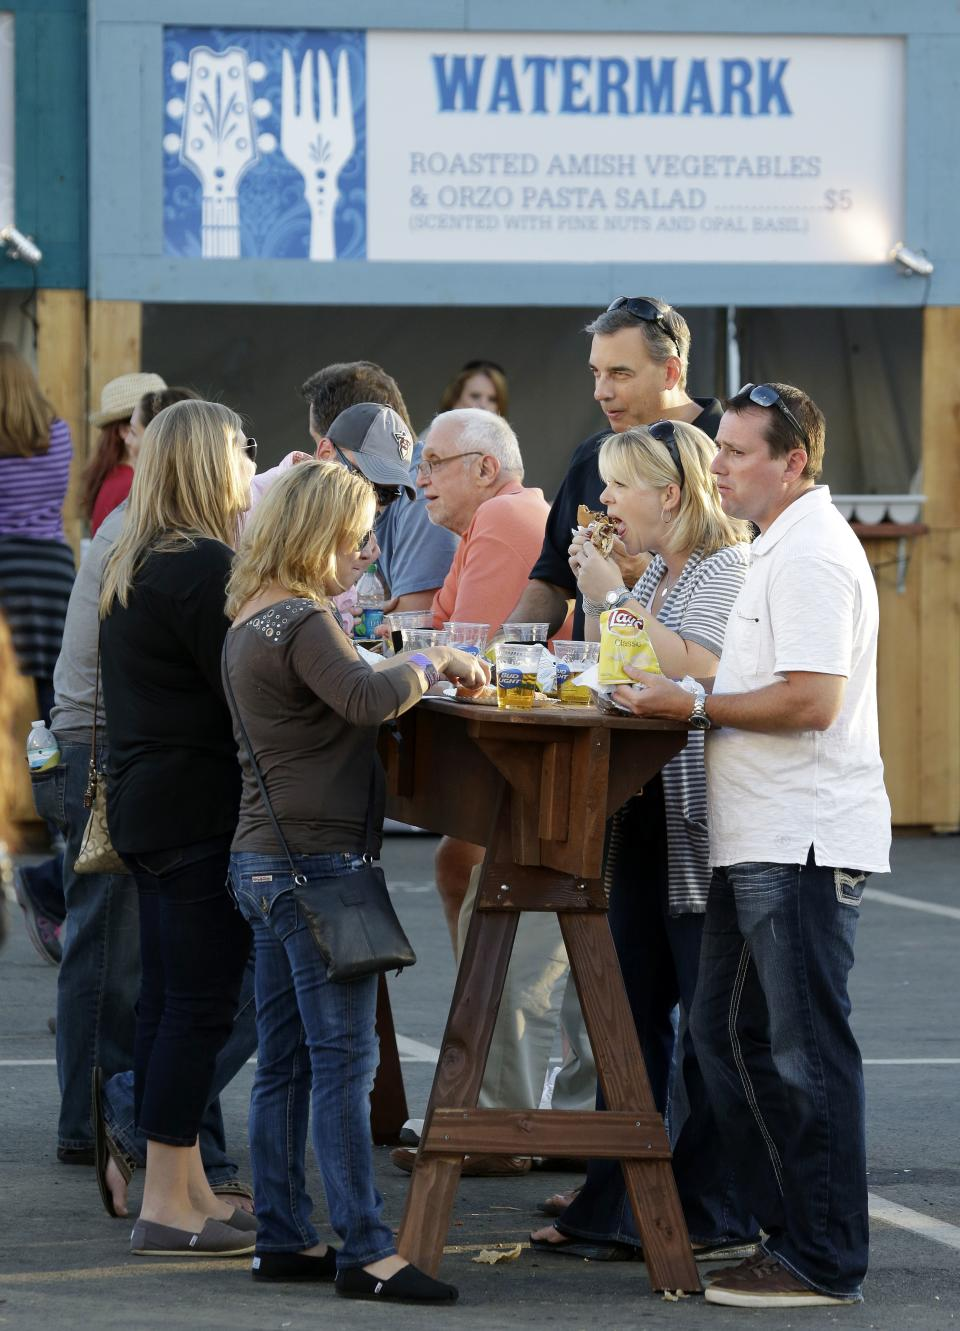 In this Sept, 28, 2013 photo, people dine standing up at outdoor tables at the Southern Ground Music & Food Festival in Nashville, Tenn. Musicians are encouraging the city's burgeoning food culture by turning the spotlight on local chefs and restaurants. (AP Photo/Mark Humphrey)